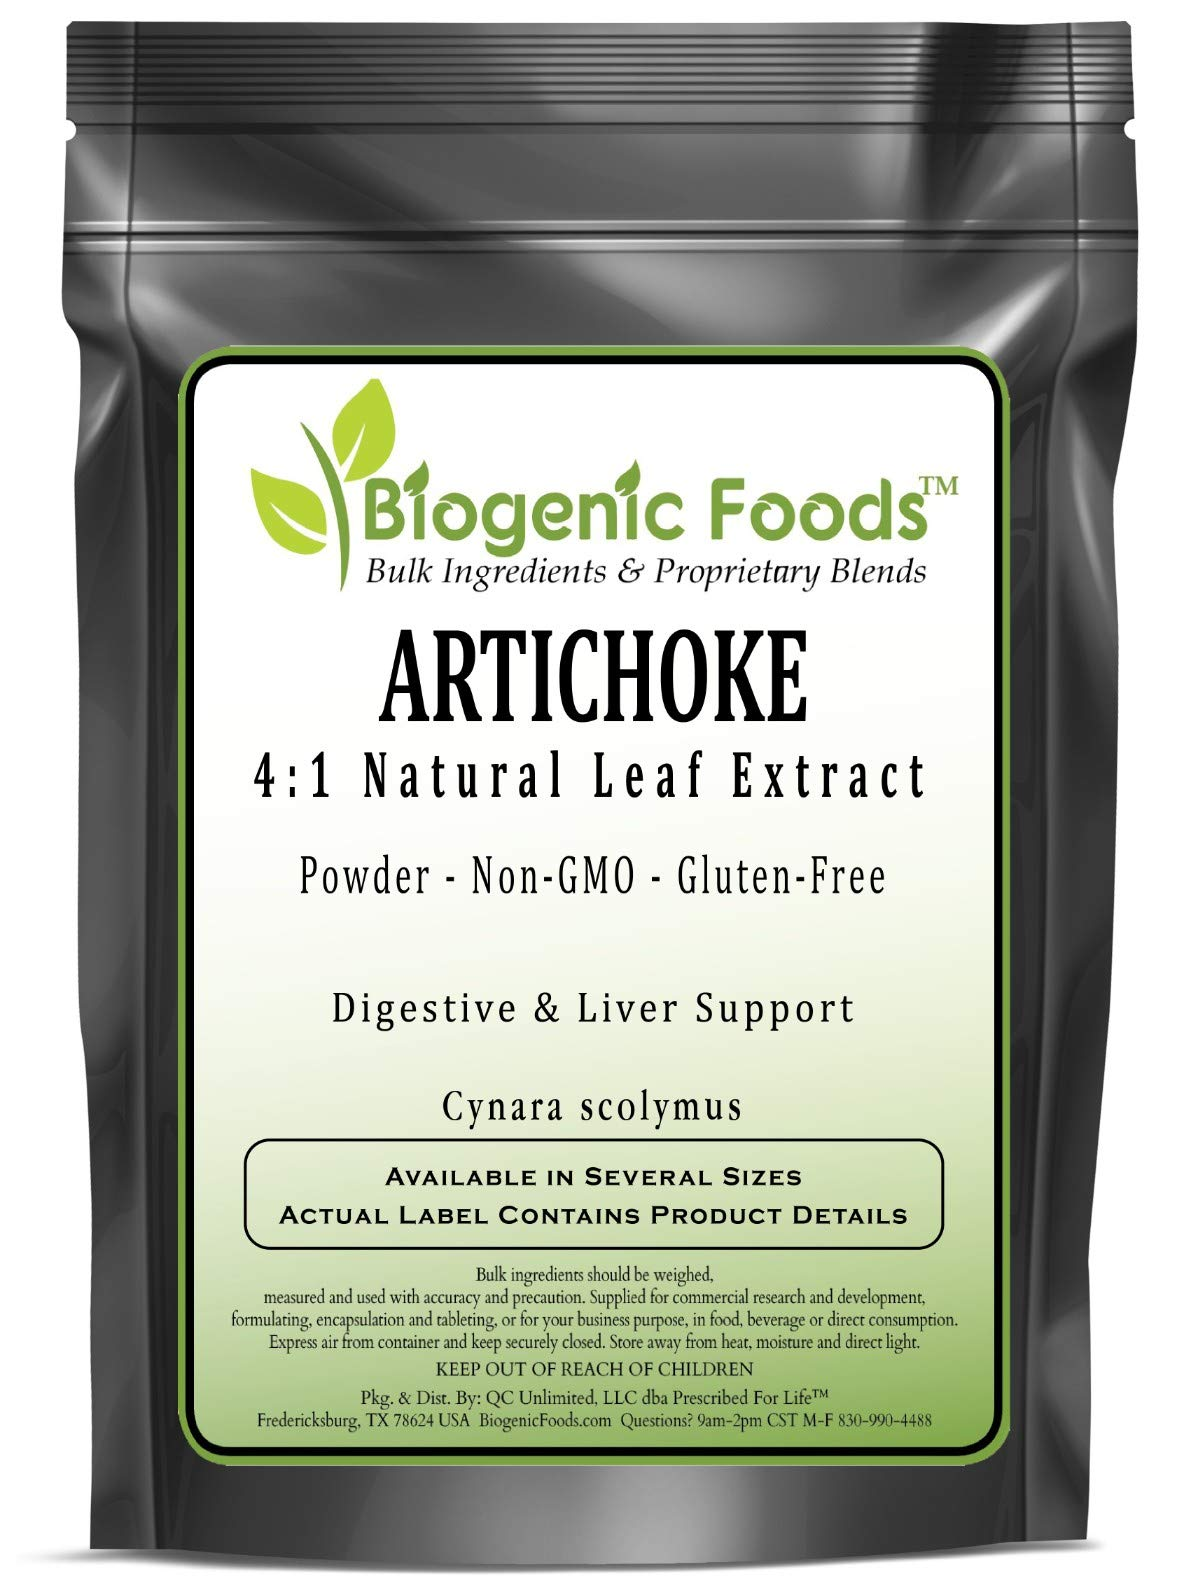 Artichoke - 4:1 Natural Leaf Extract Powder (Cynara scolymus), 10 kg